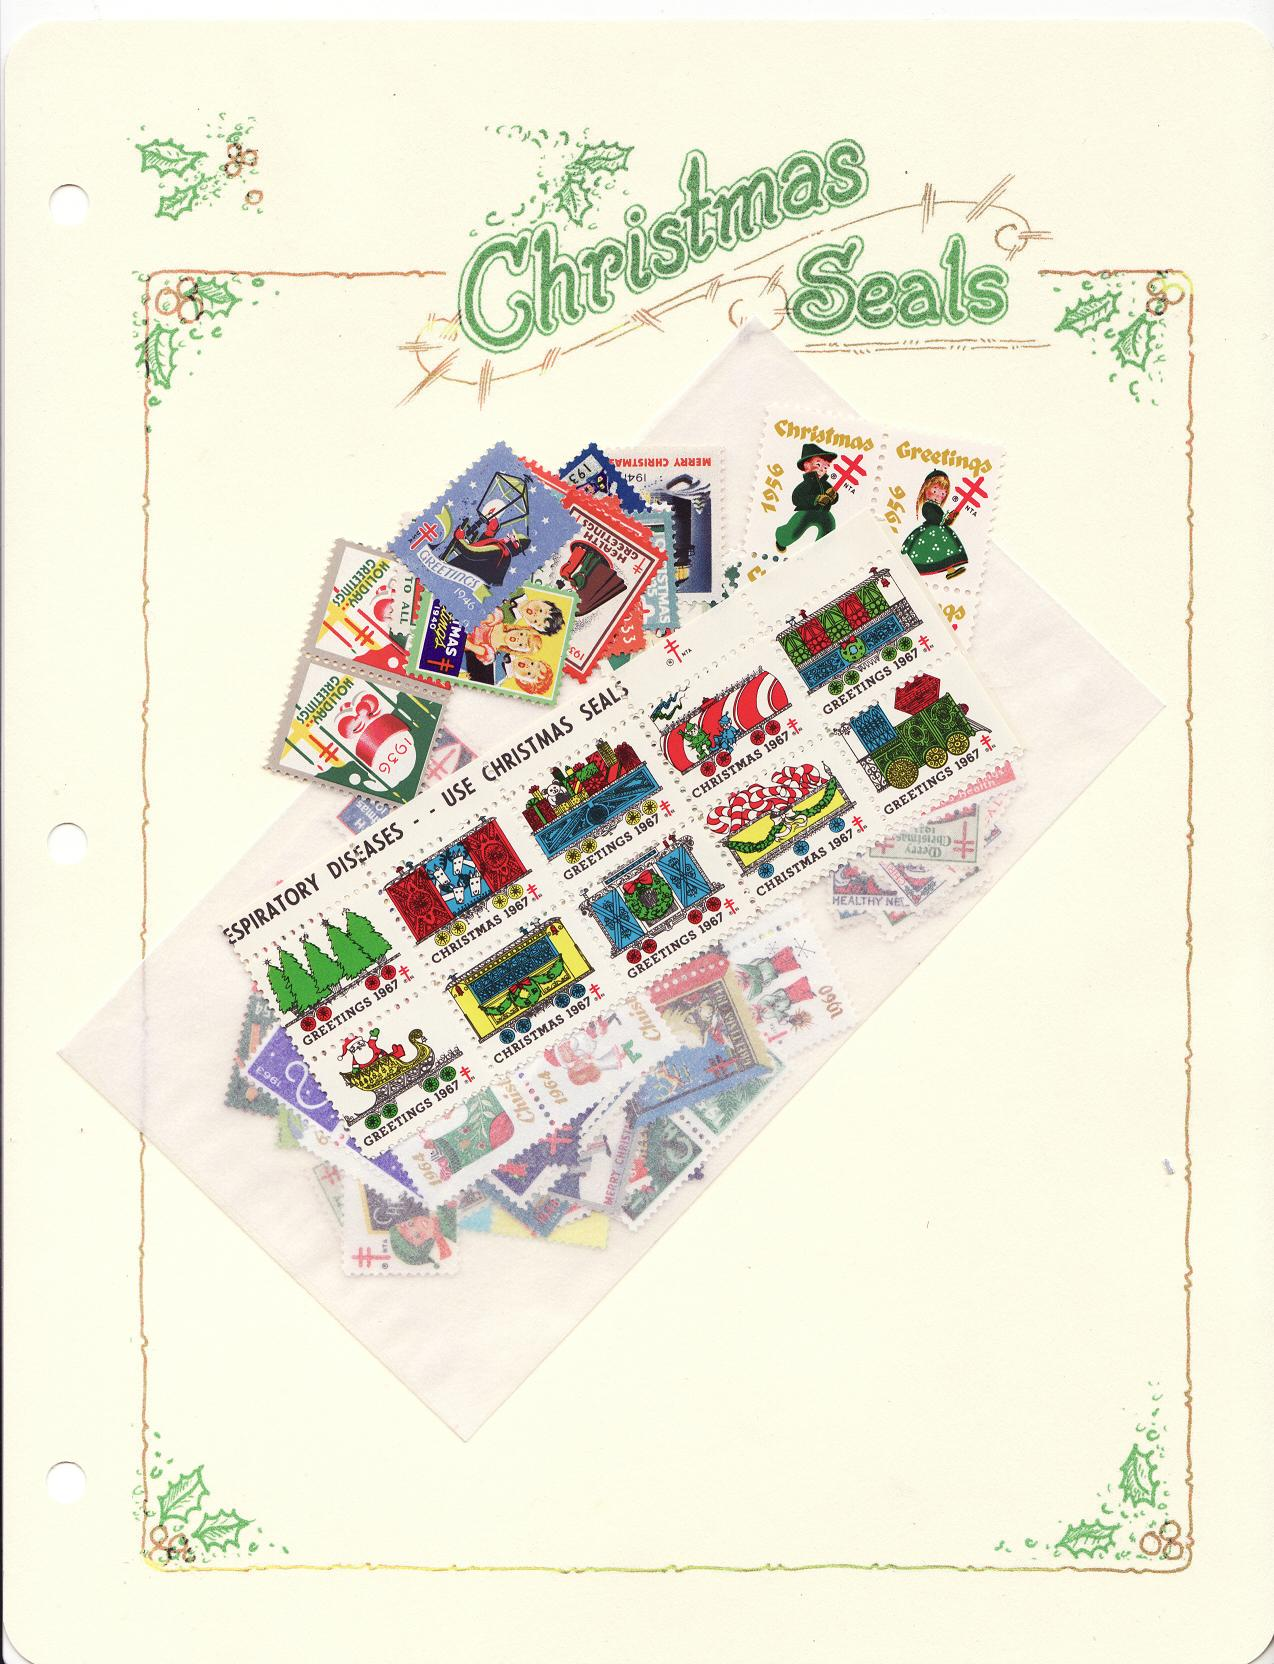 Green's Catalog, TB Seals of the World, Part 1, U.S. National Christmas Seals, 2014 ed., CD